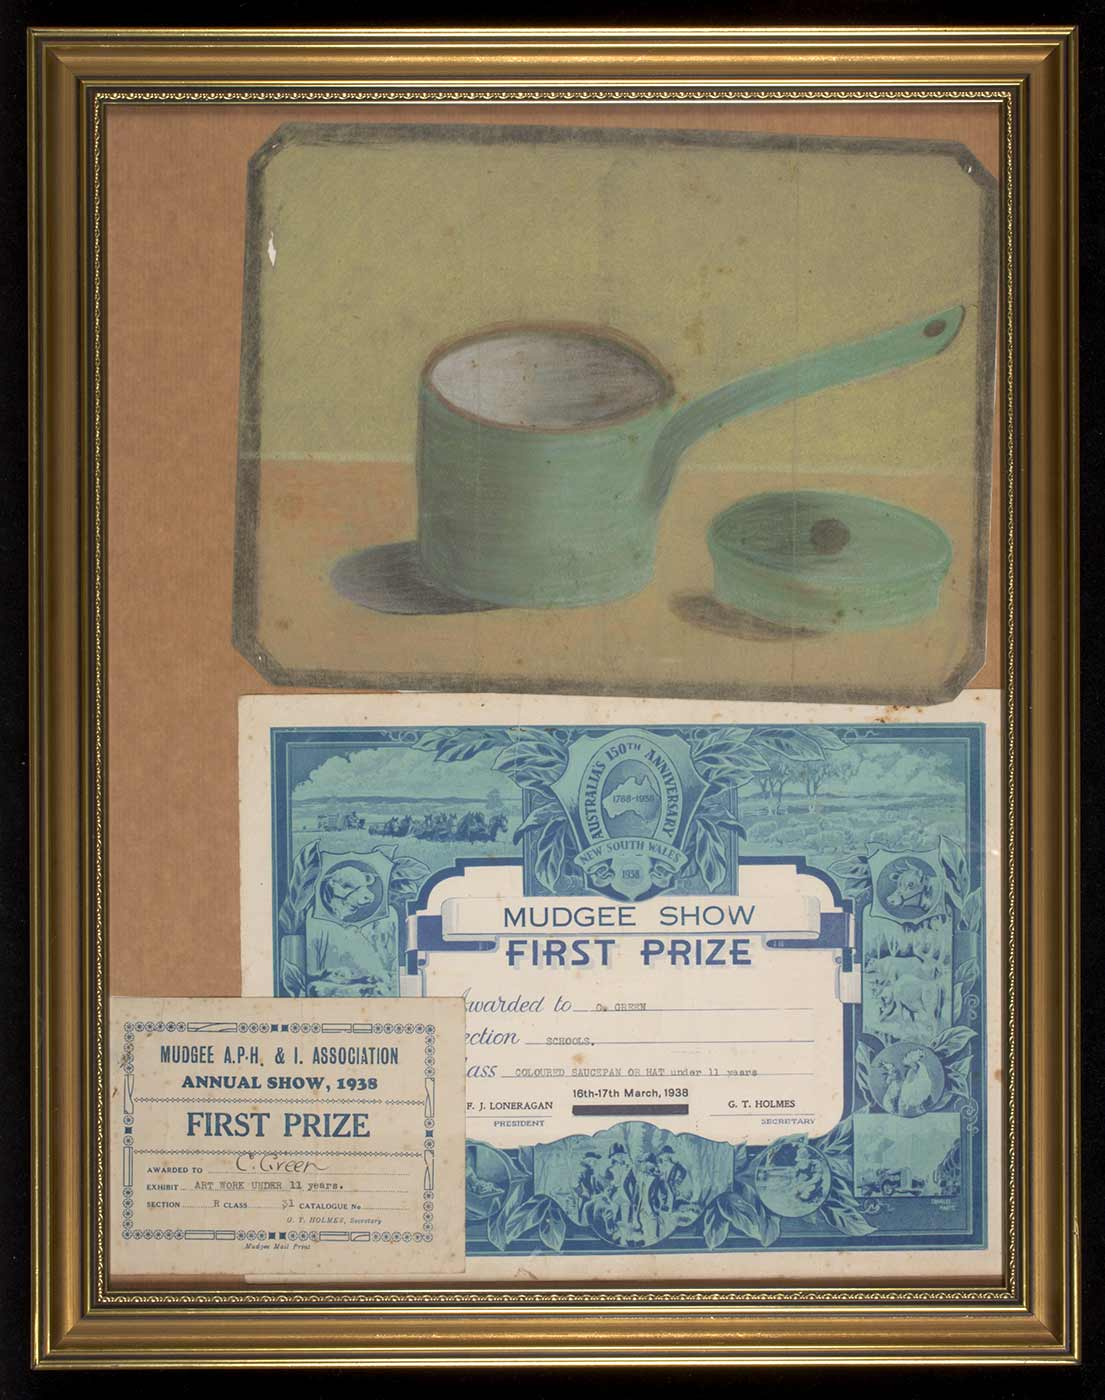 A child's painting of a green saucepan and lid, framed with two certificates below. The larger certificate, white with an ornate blue border depicting agricultural scenes, reads: 'MUDGEE SHOW / FIRST PRIZE / Awarded to C. GREEN / Section SCHOOLS / Class COLOURED SAUCEPAN OR HAT under 11 years / 16th-17th March, 1938 / PRESIDENT F. J. LONERGAN / SECRETARY G. T. HOLMES'. A smaller blue and white certificate in the bottom right reads: 'MUDGEE A.P.H. & I. ASSOCIATION / ANNUAL SHOW, 1938 / FIRST PRIZE / AWARDED TO C. Green, EXHIBIT ART WORK UNDER 11 years / SECTION R CLASS 31 / G. T. HOLMES, Secretary'. - click to view larger image